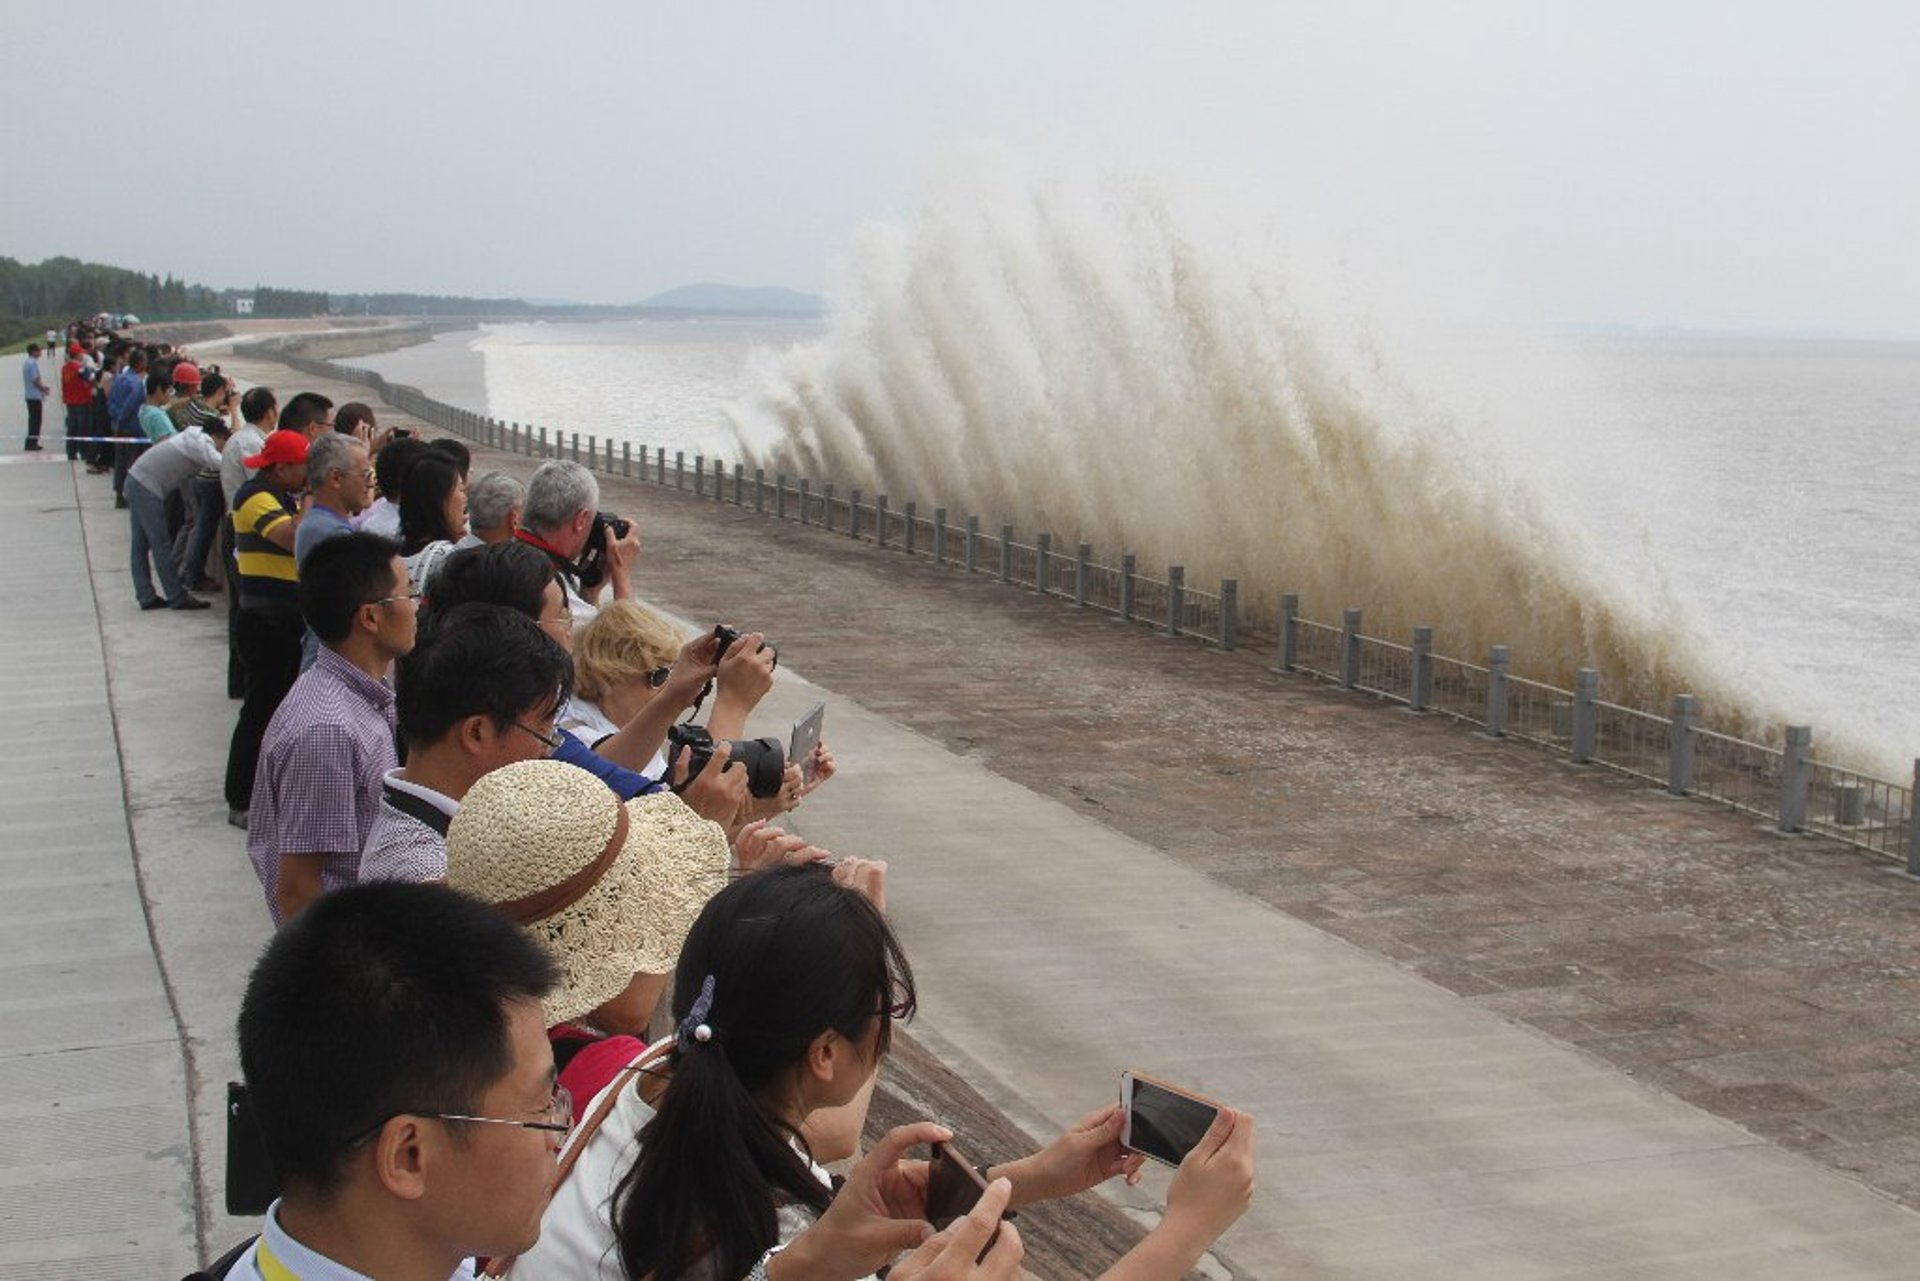 Qiantang River Tidal Bore in China 2020 - Best Time